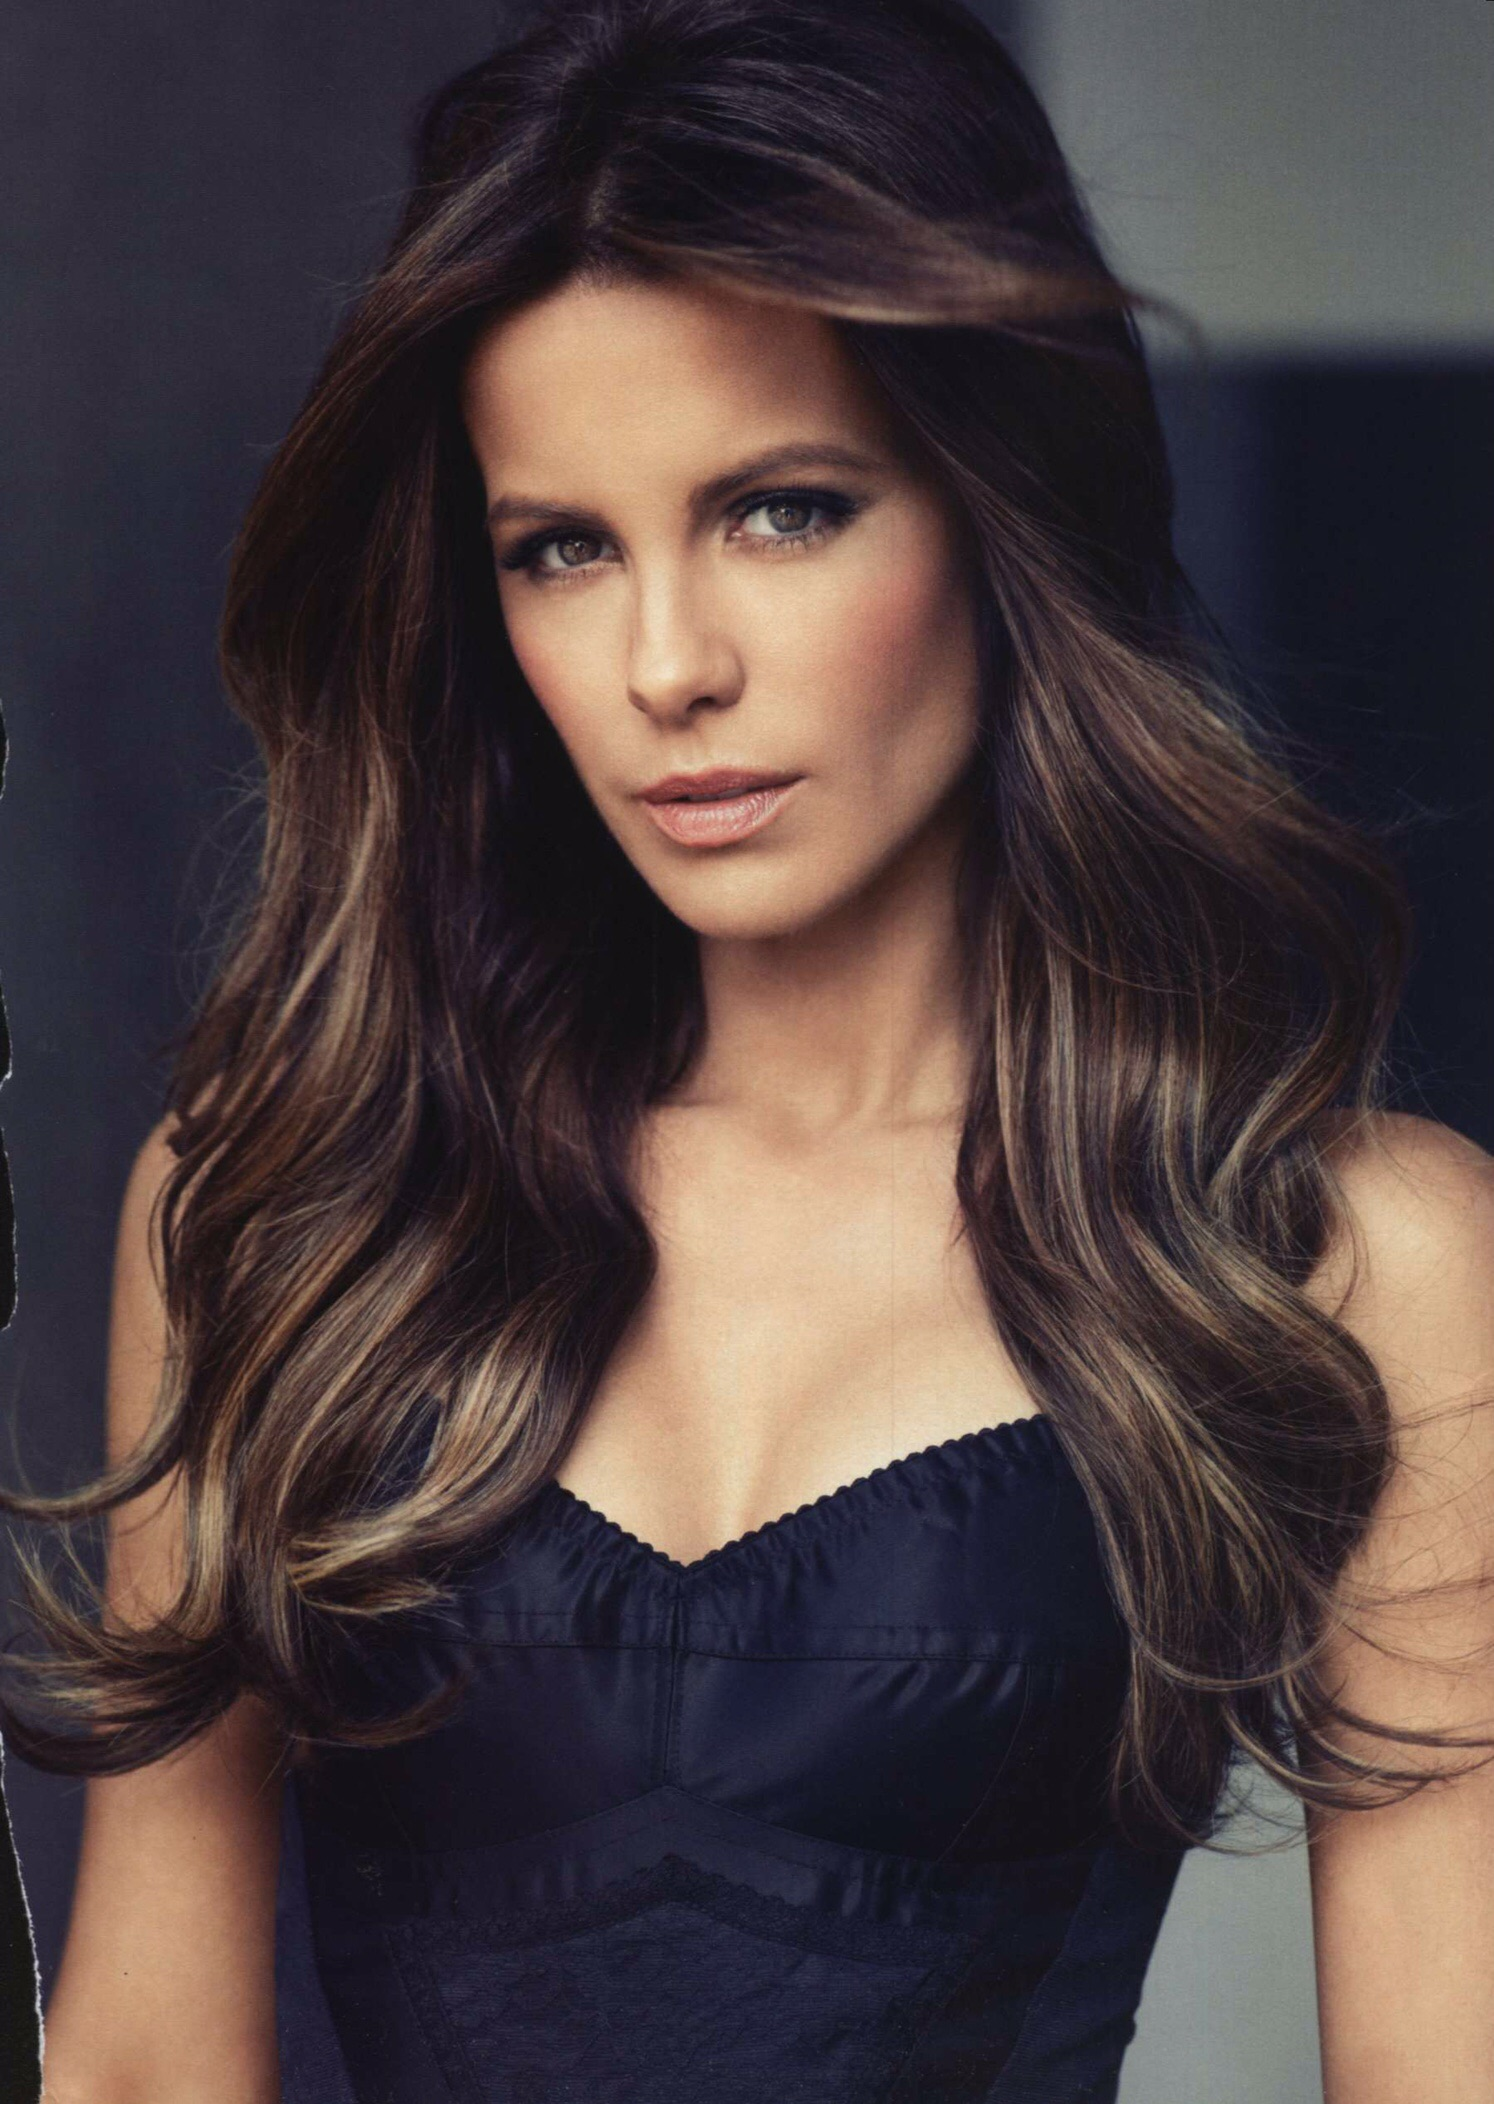 Kate Beckinsale (born 1973) nudes (29 photo), Topless, Cleavage, Twitter, braless 2006